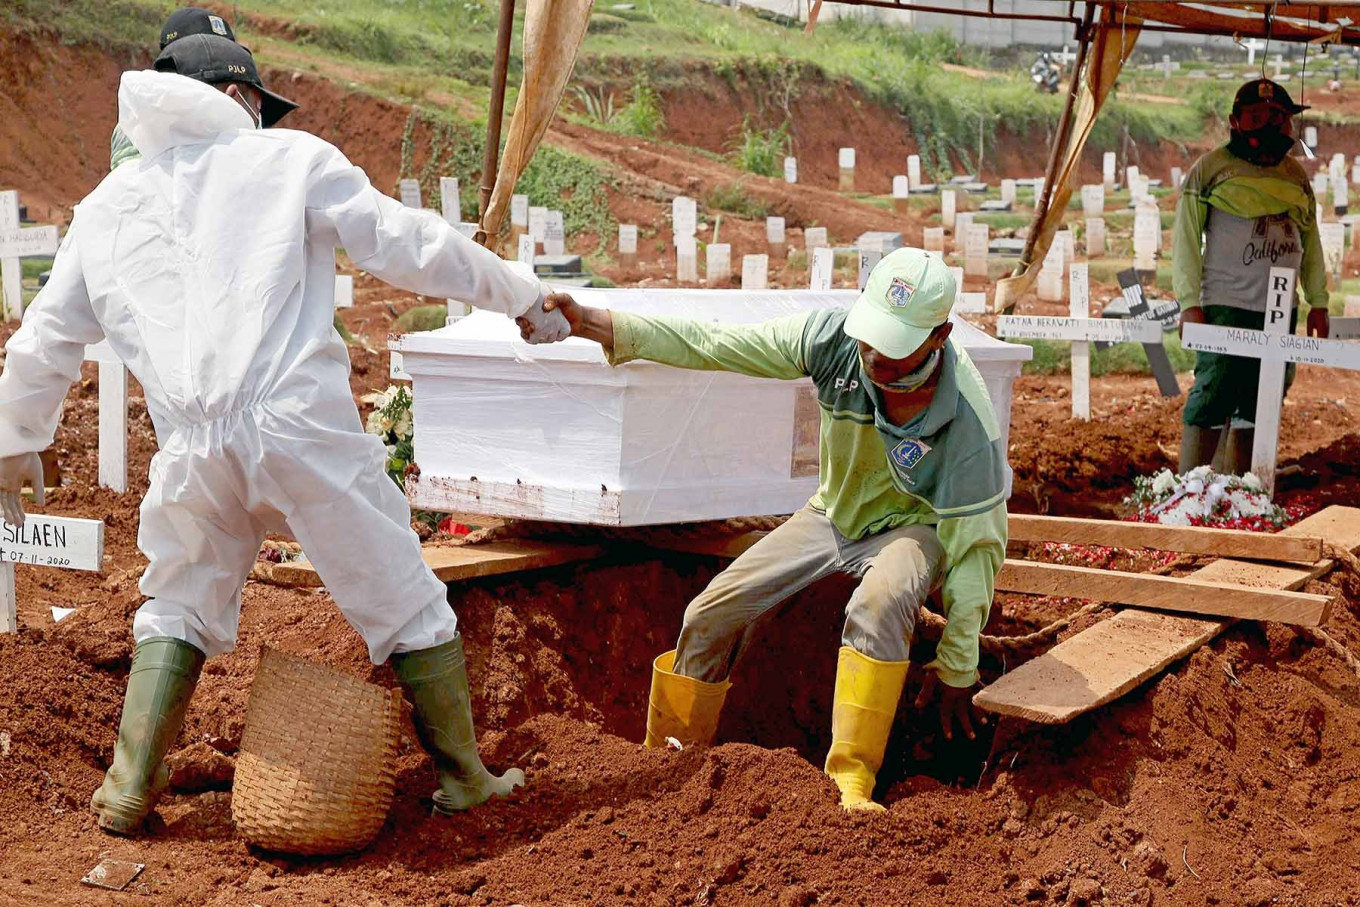 A grave worker helps his colleague out of the grave of a COVID-19 patient at Pondok Ranggon public cemetery in East Jakarta on Wednesday, Nov 12 The men had to widen the hole to make room for the coffin. JP/P.J.Leo